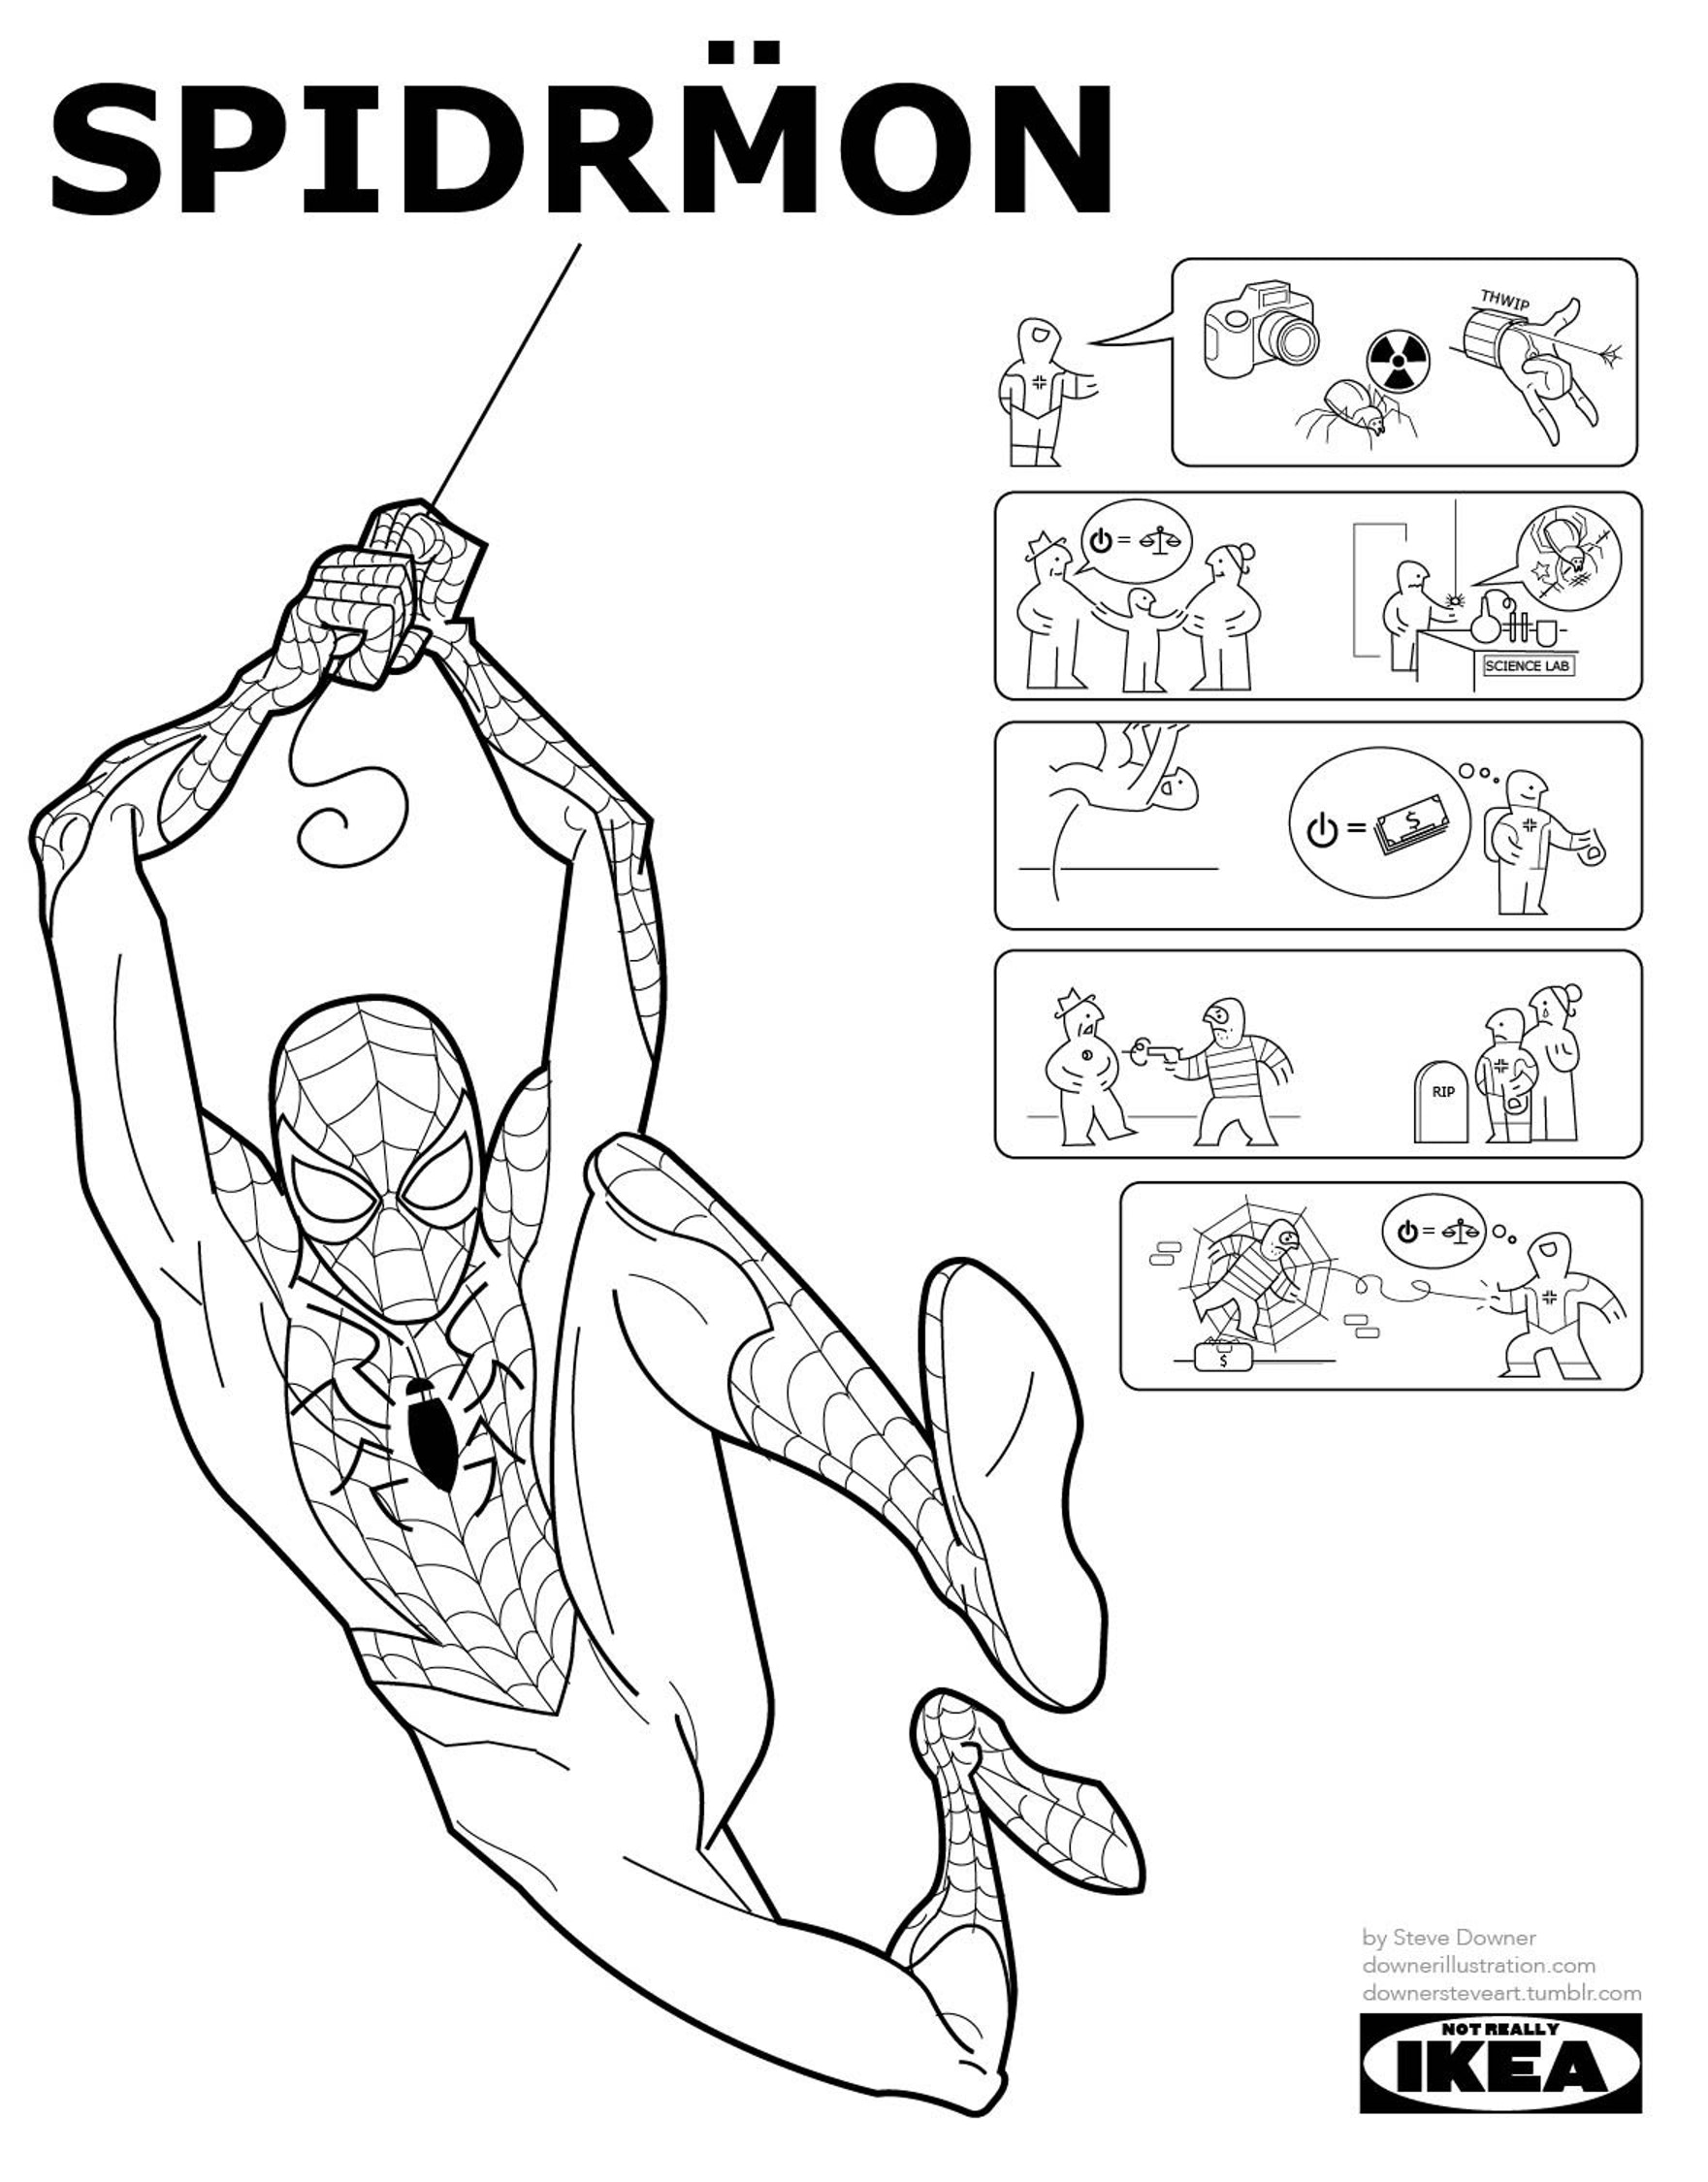 Iconic Superhero Origin Stories as Ikea Instruction